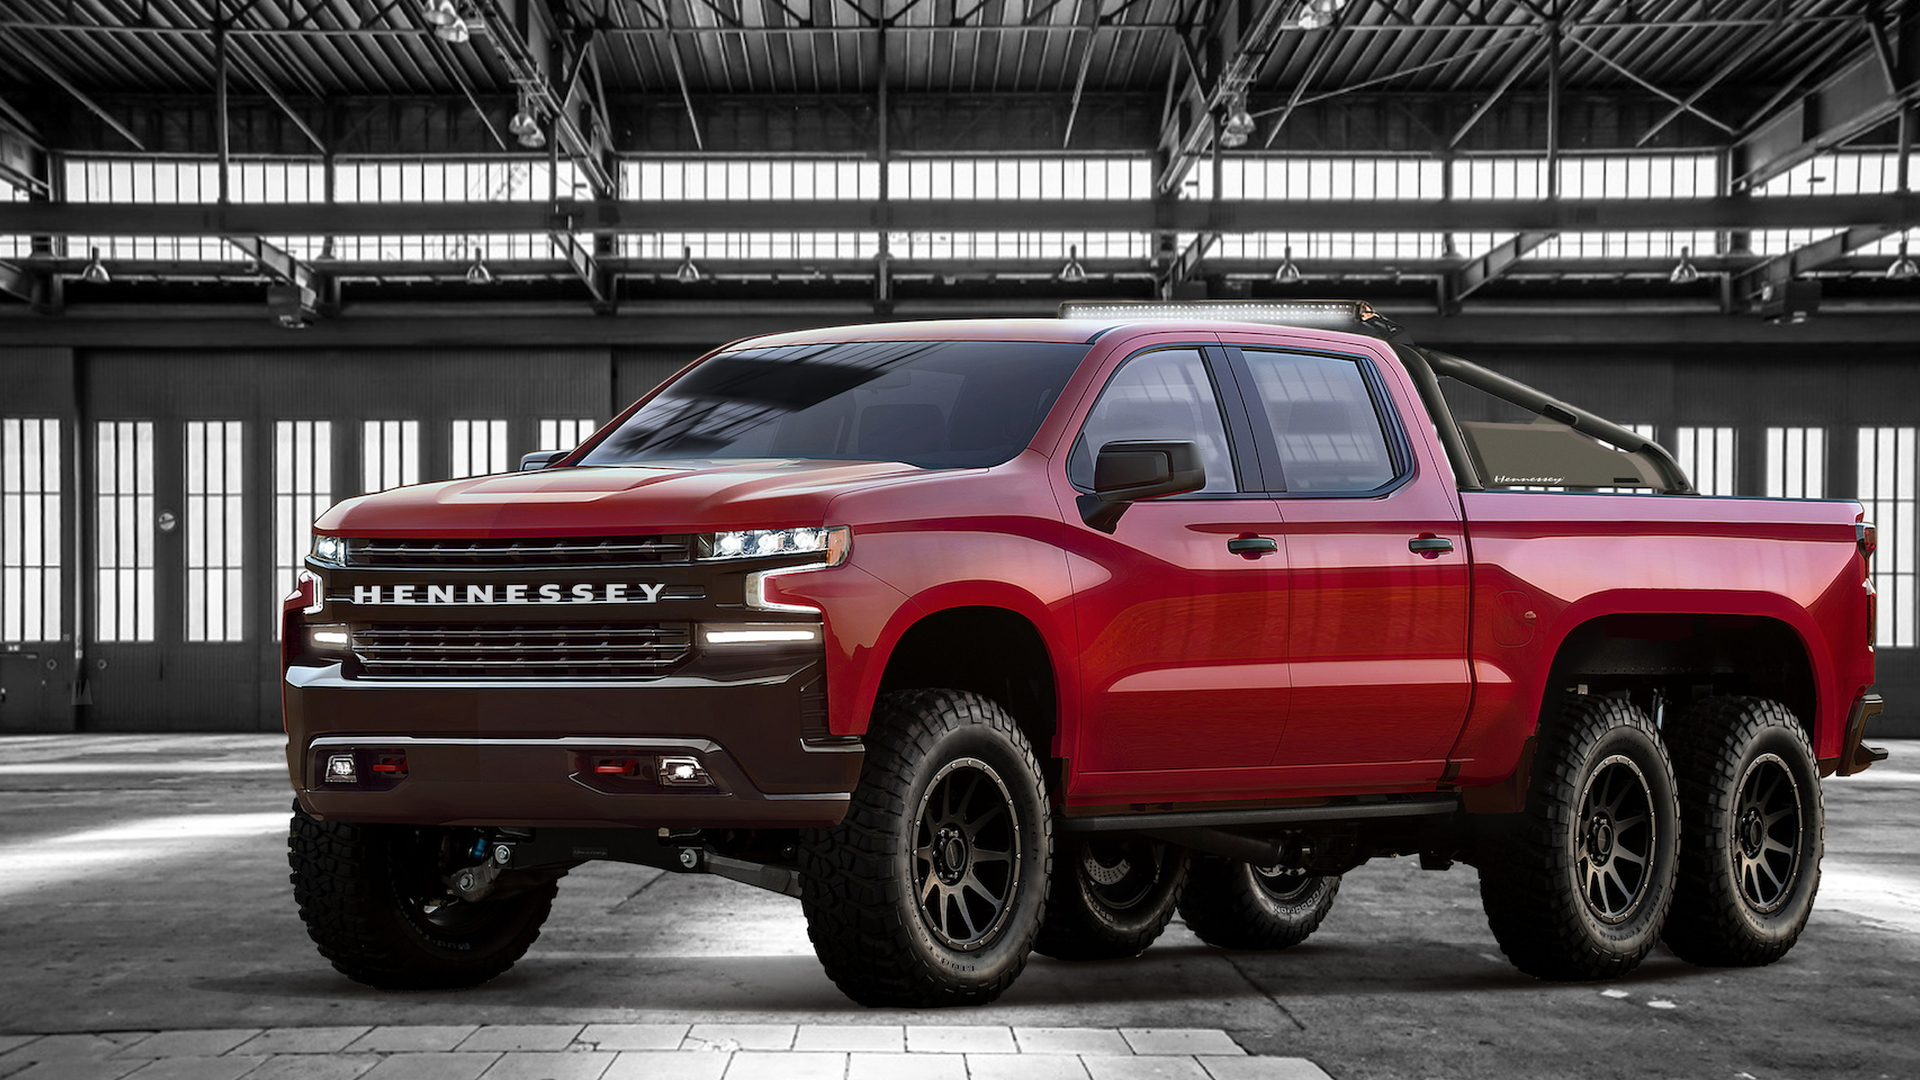 Chevy Silverado Based Hennessey Goliath 6x6 Revealed With 705 Horsepower